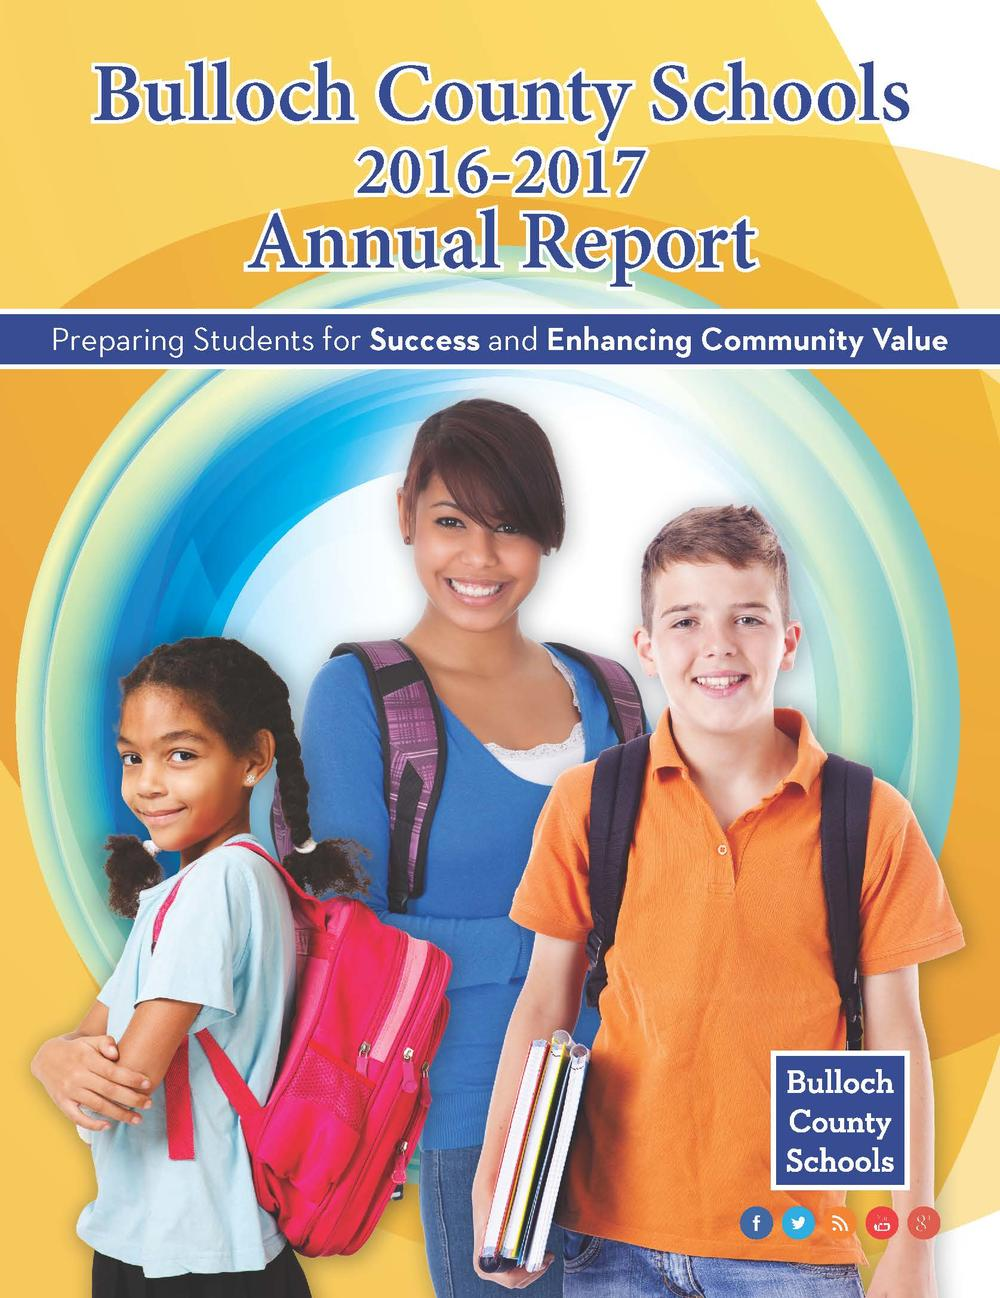 Bulloch County Schools Annual Report Front Cover